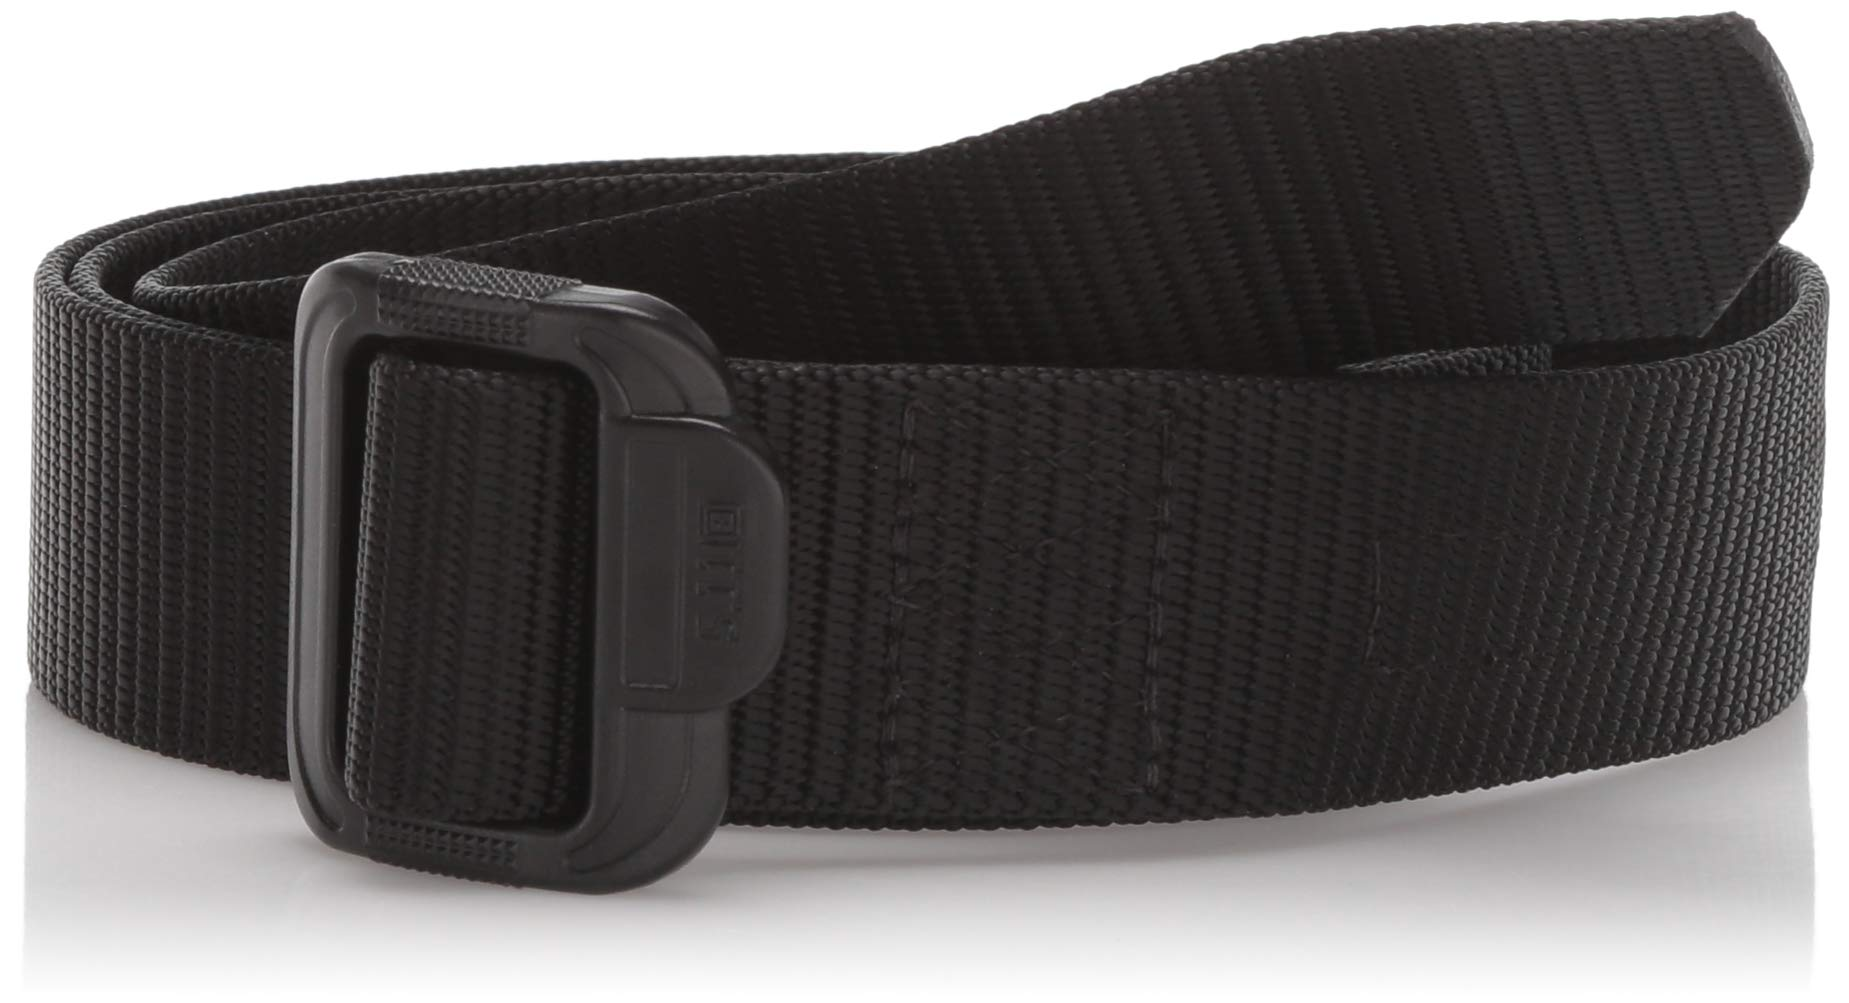 5.11 TDU Double Duty Tactical Belt, Non-Metal, 1.5-inch, Style 59568, Medium by 5.11